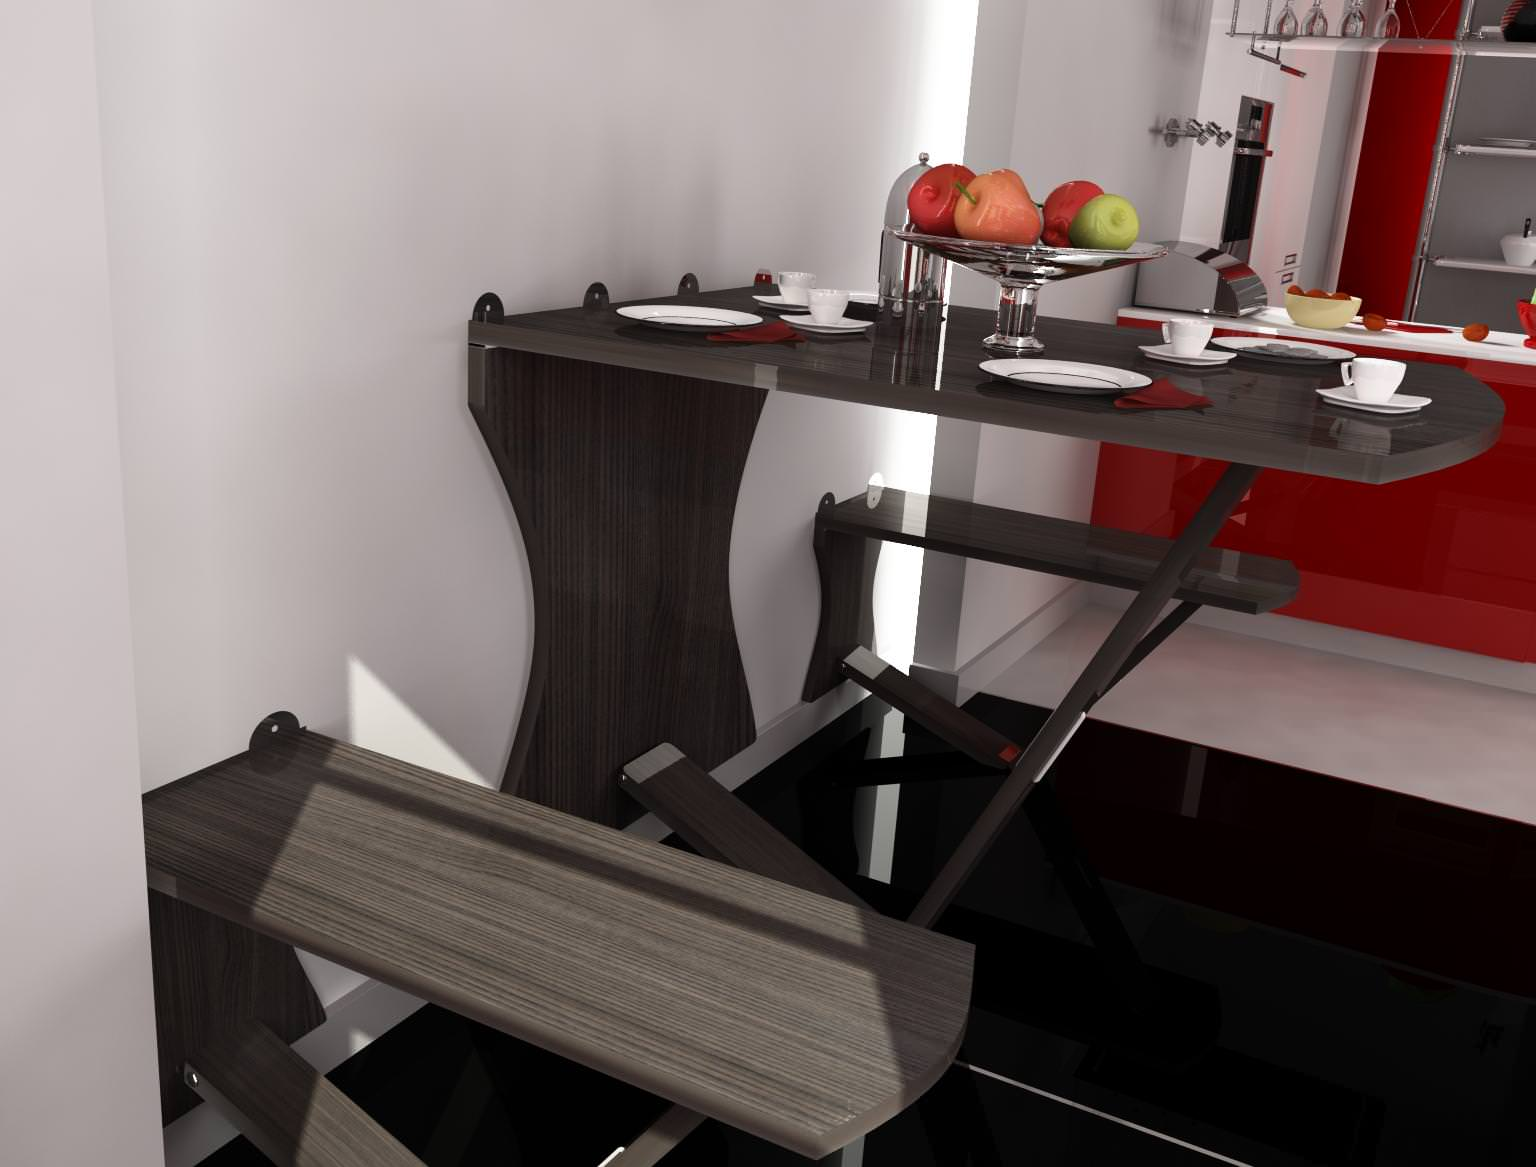 Kitchen Wall Table Kitchen wall table image collections table decoration ideas kitchen wall table 3d cgtrader kitchen wall table 3d model max 6 watchthetrailerfo workwithnaturefo